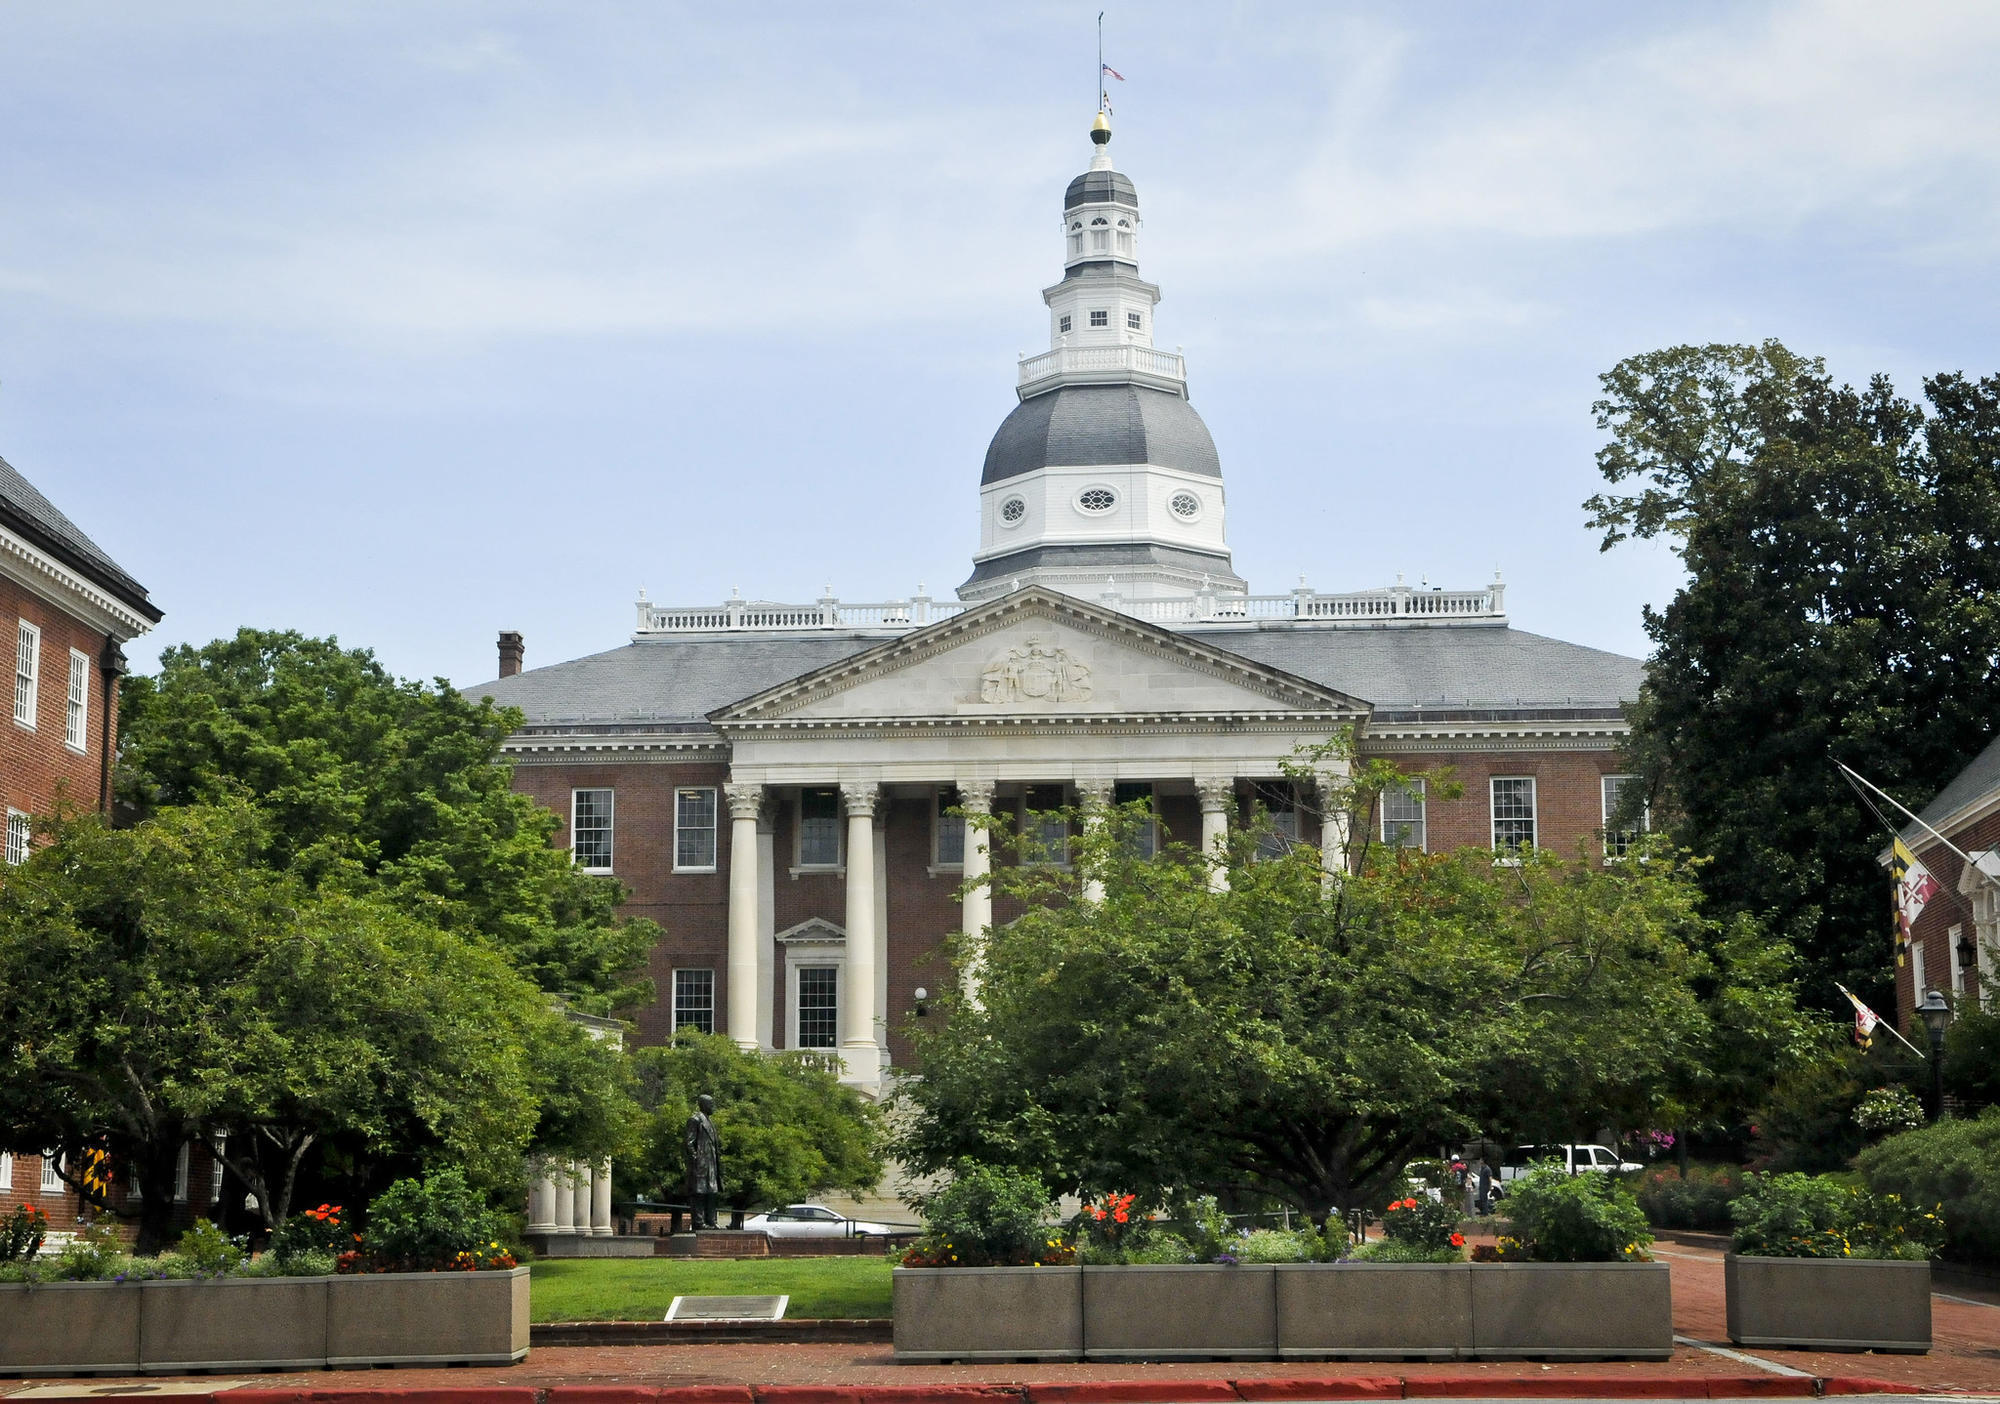 In maryland general assembly bills heard on airplane seats in maryland general assembly bills heard on airplane seats venison donations and more baltimore sun 1betcityfo Images